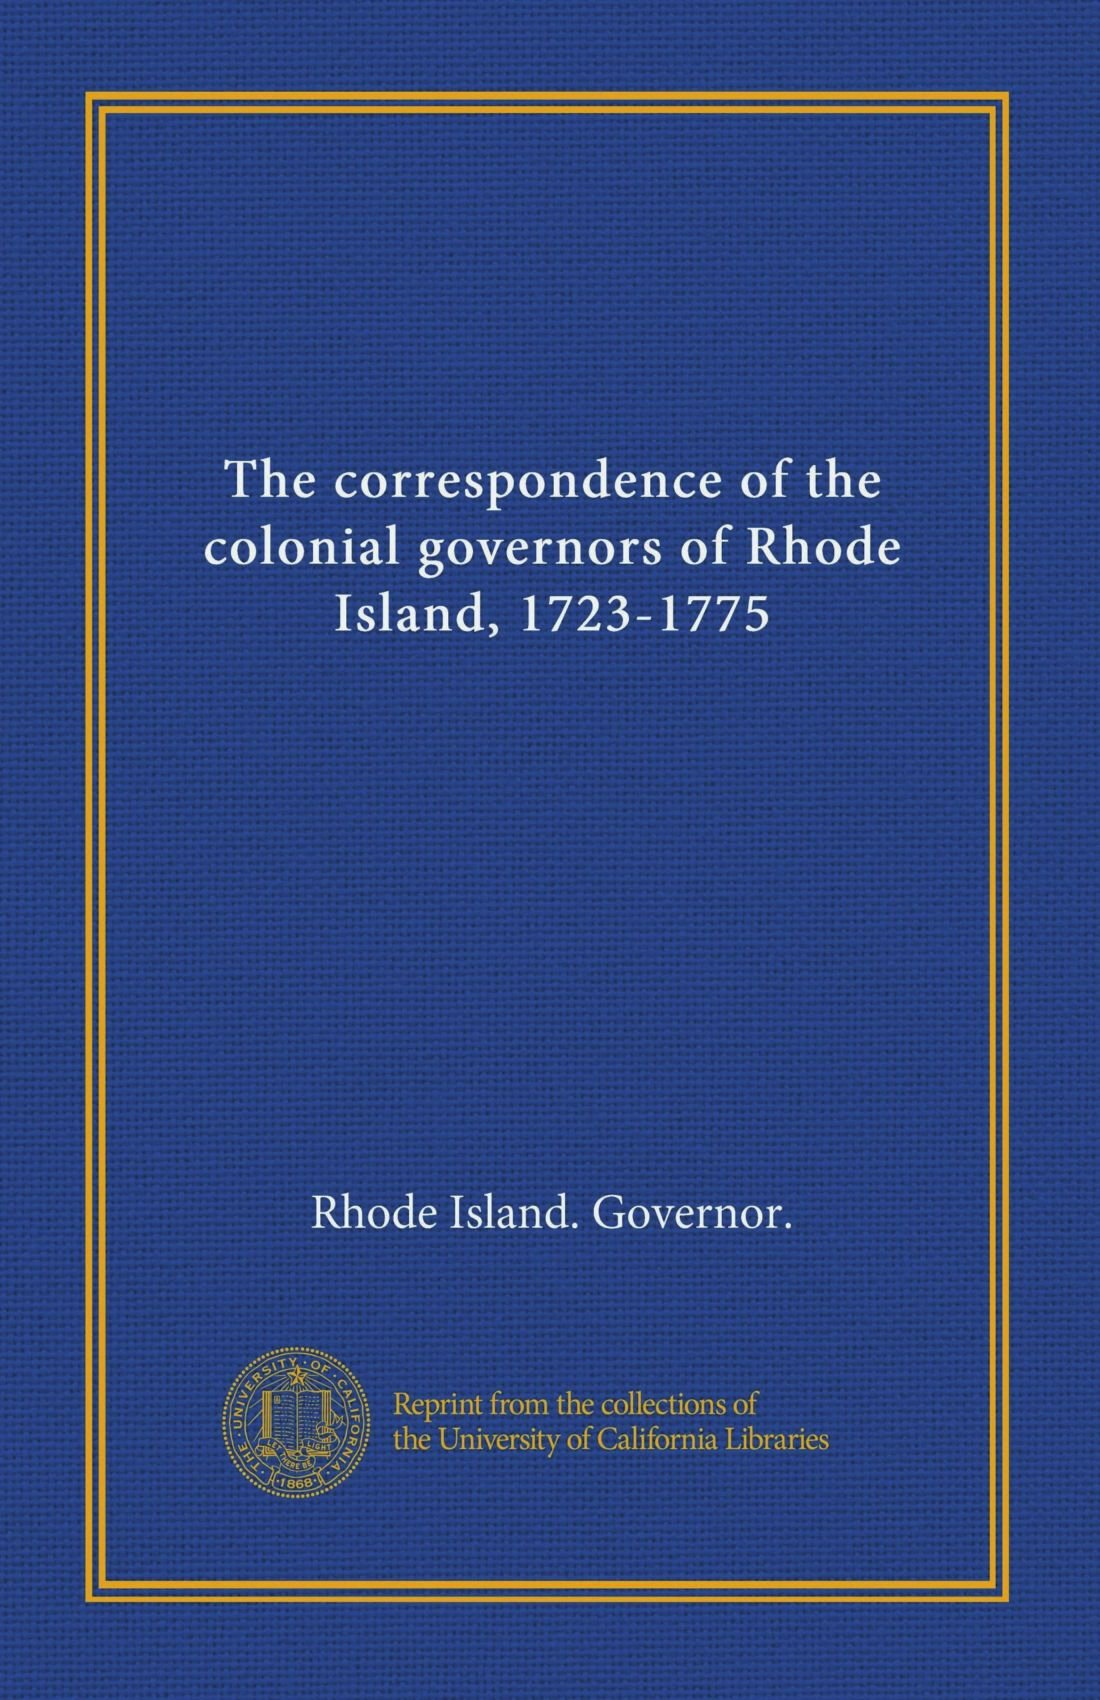 The correspondence of the colonial governors of Rhode Island, 1723-1775 (v.2)